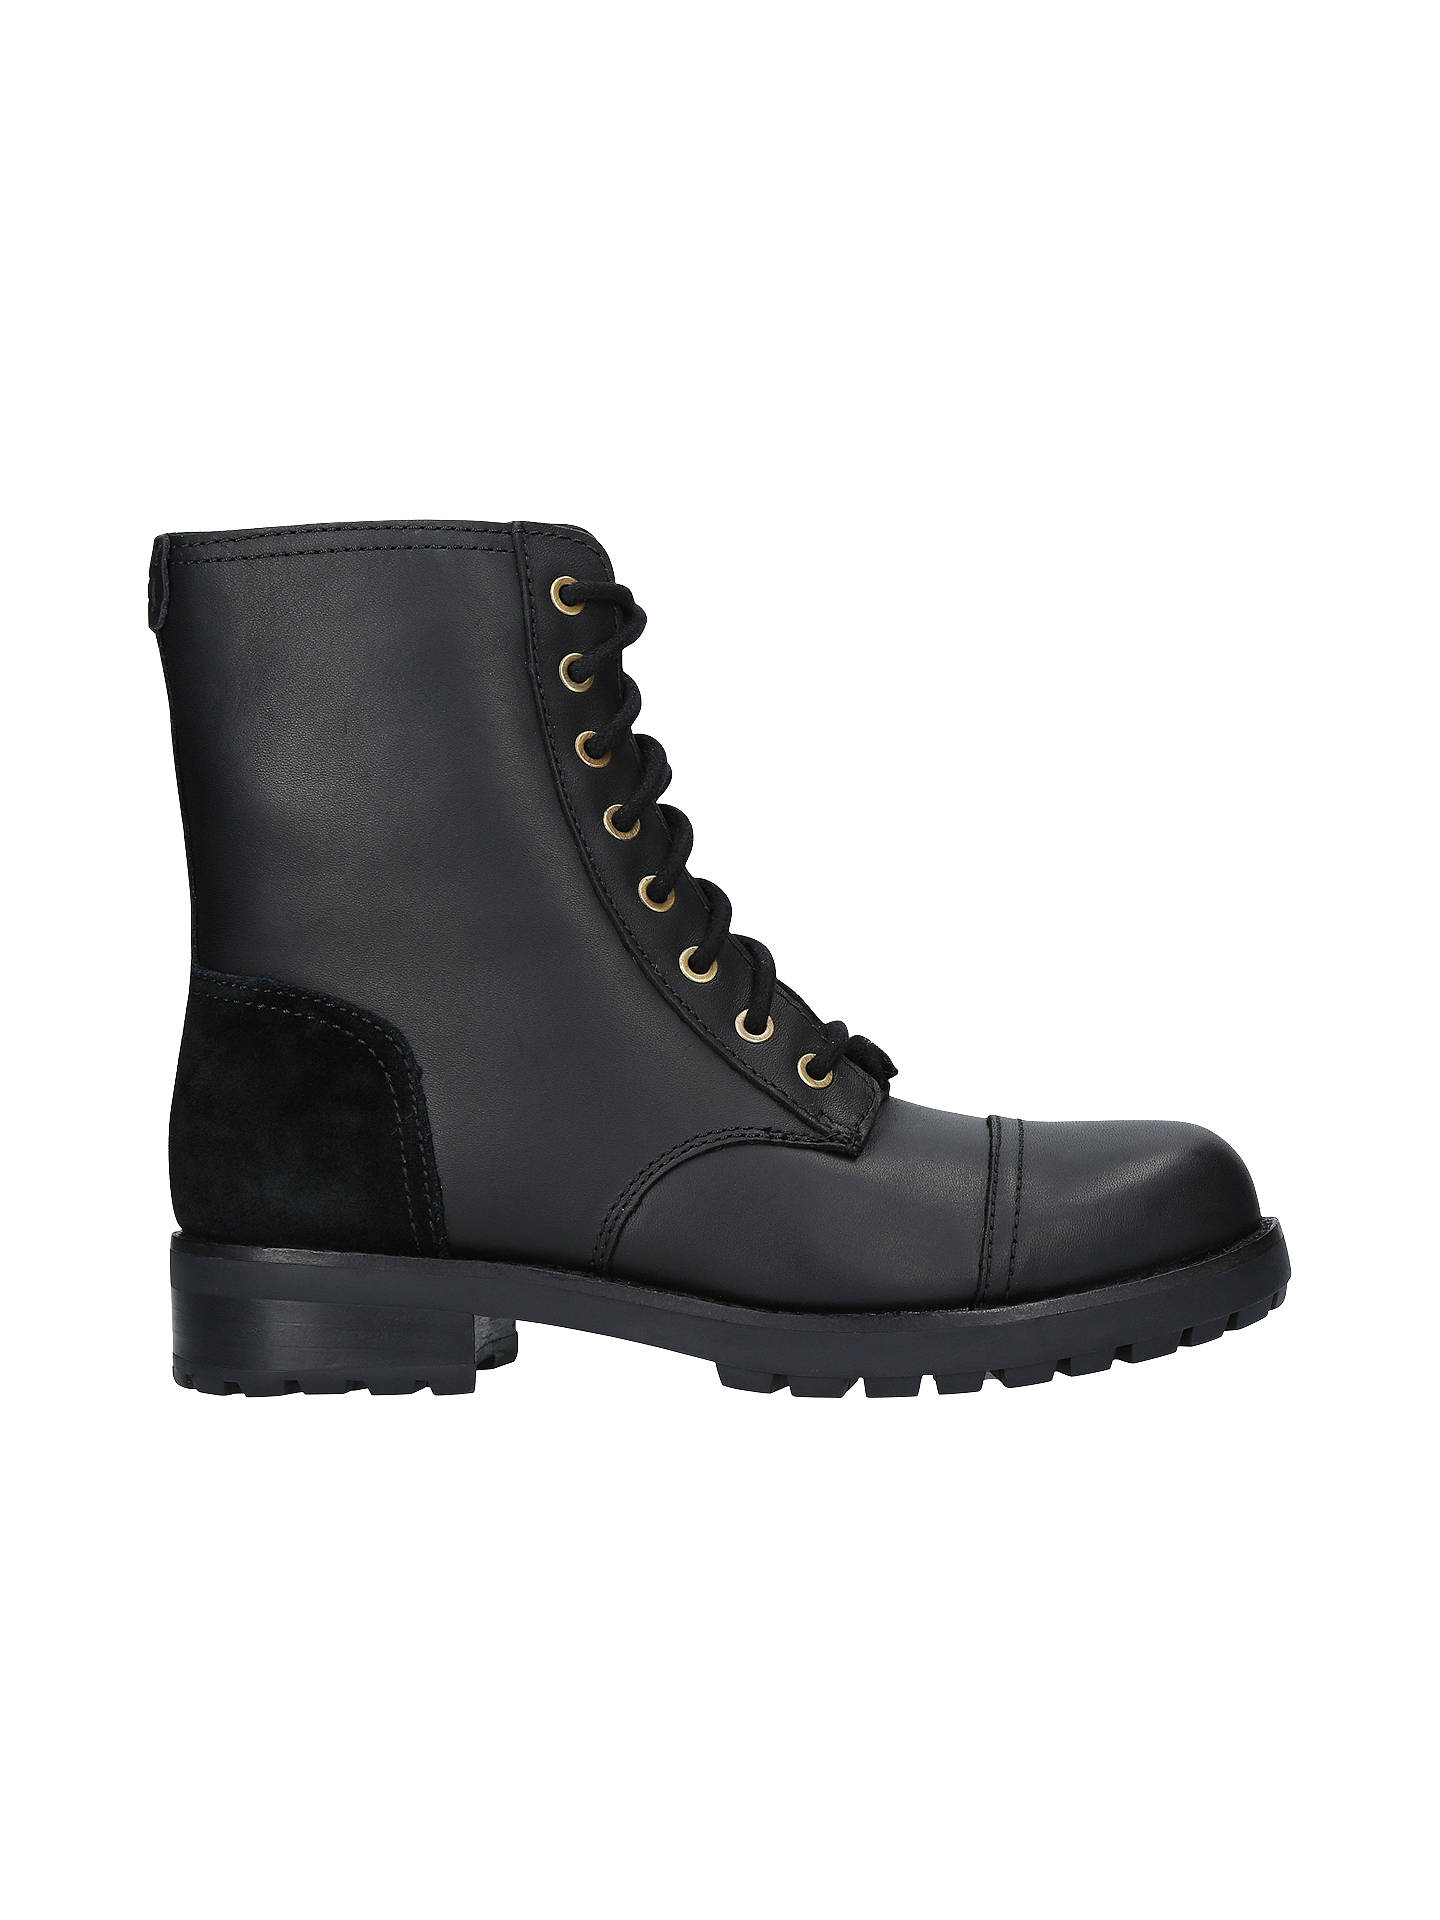 75ffae15574 UGG Kilmer Lace Up Ankle Boots, Black Leather/Suede at John Lewis ...